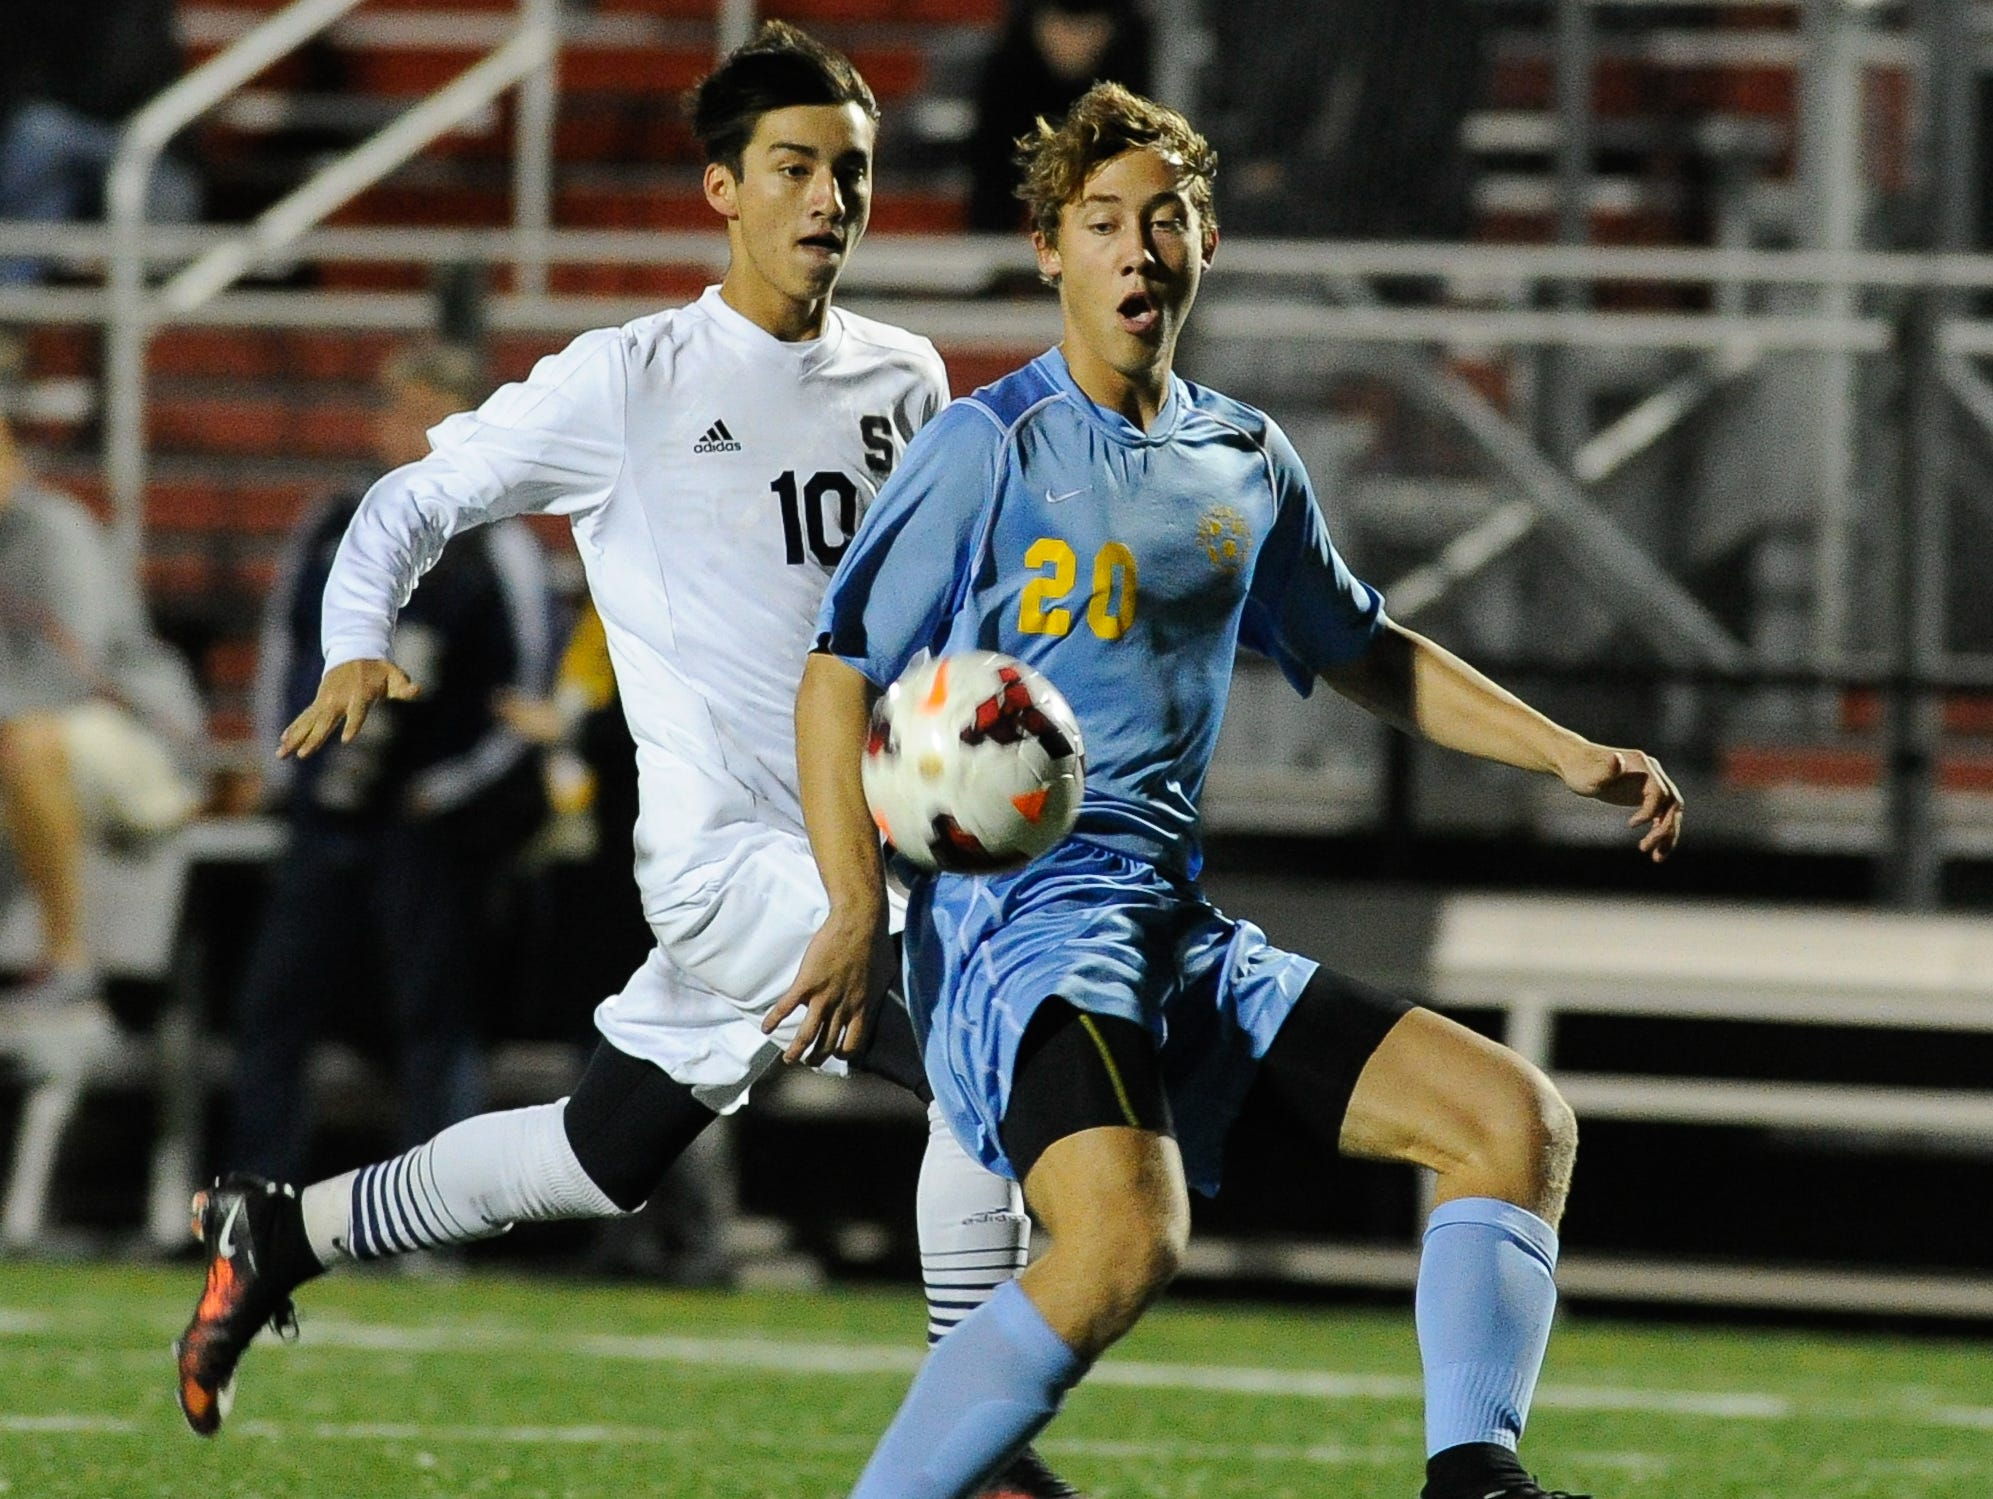 Cape Henlopen's #20 Luke Mulcahy and Salesianum's #10 Gavin Ford run for the ball in the first half of the DIAA Division I soccer semifinal game at Smyrna High School.